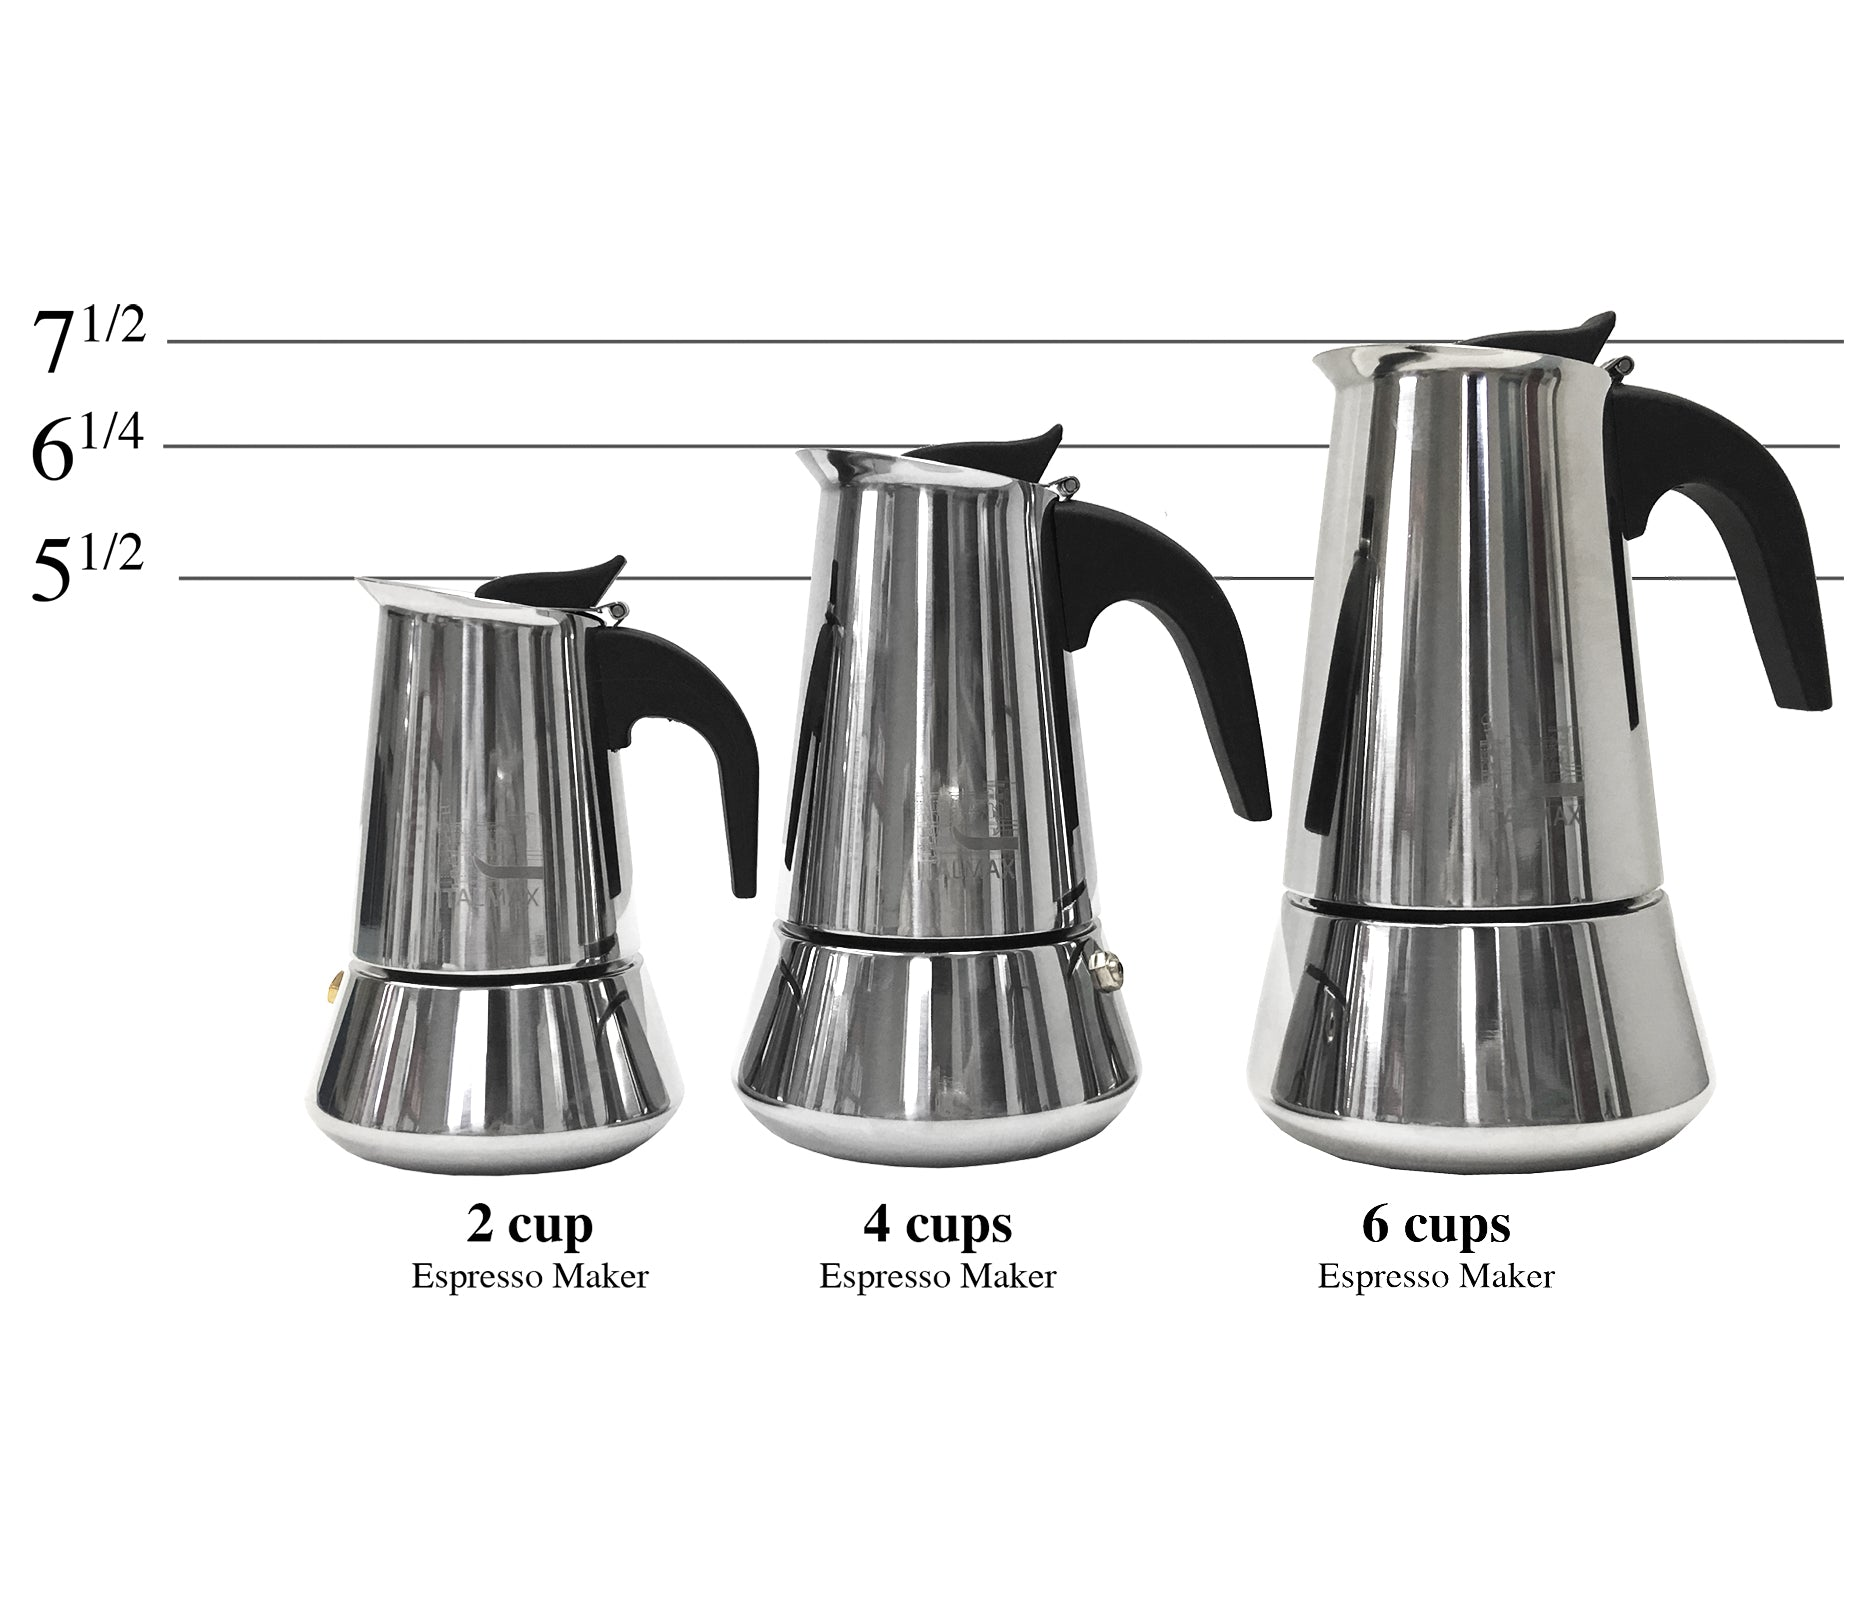 Stainless Steel Espresso Coffee Maker